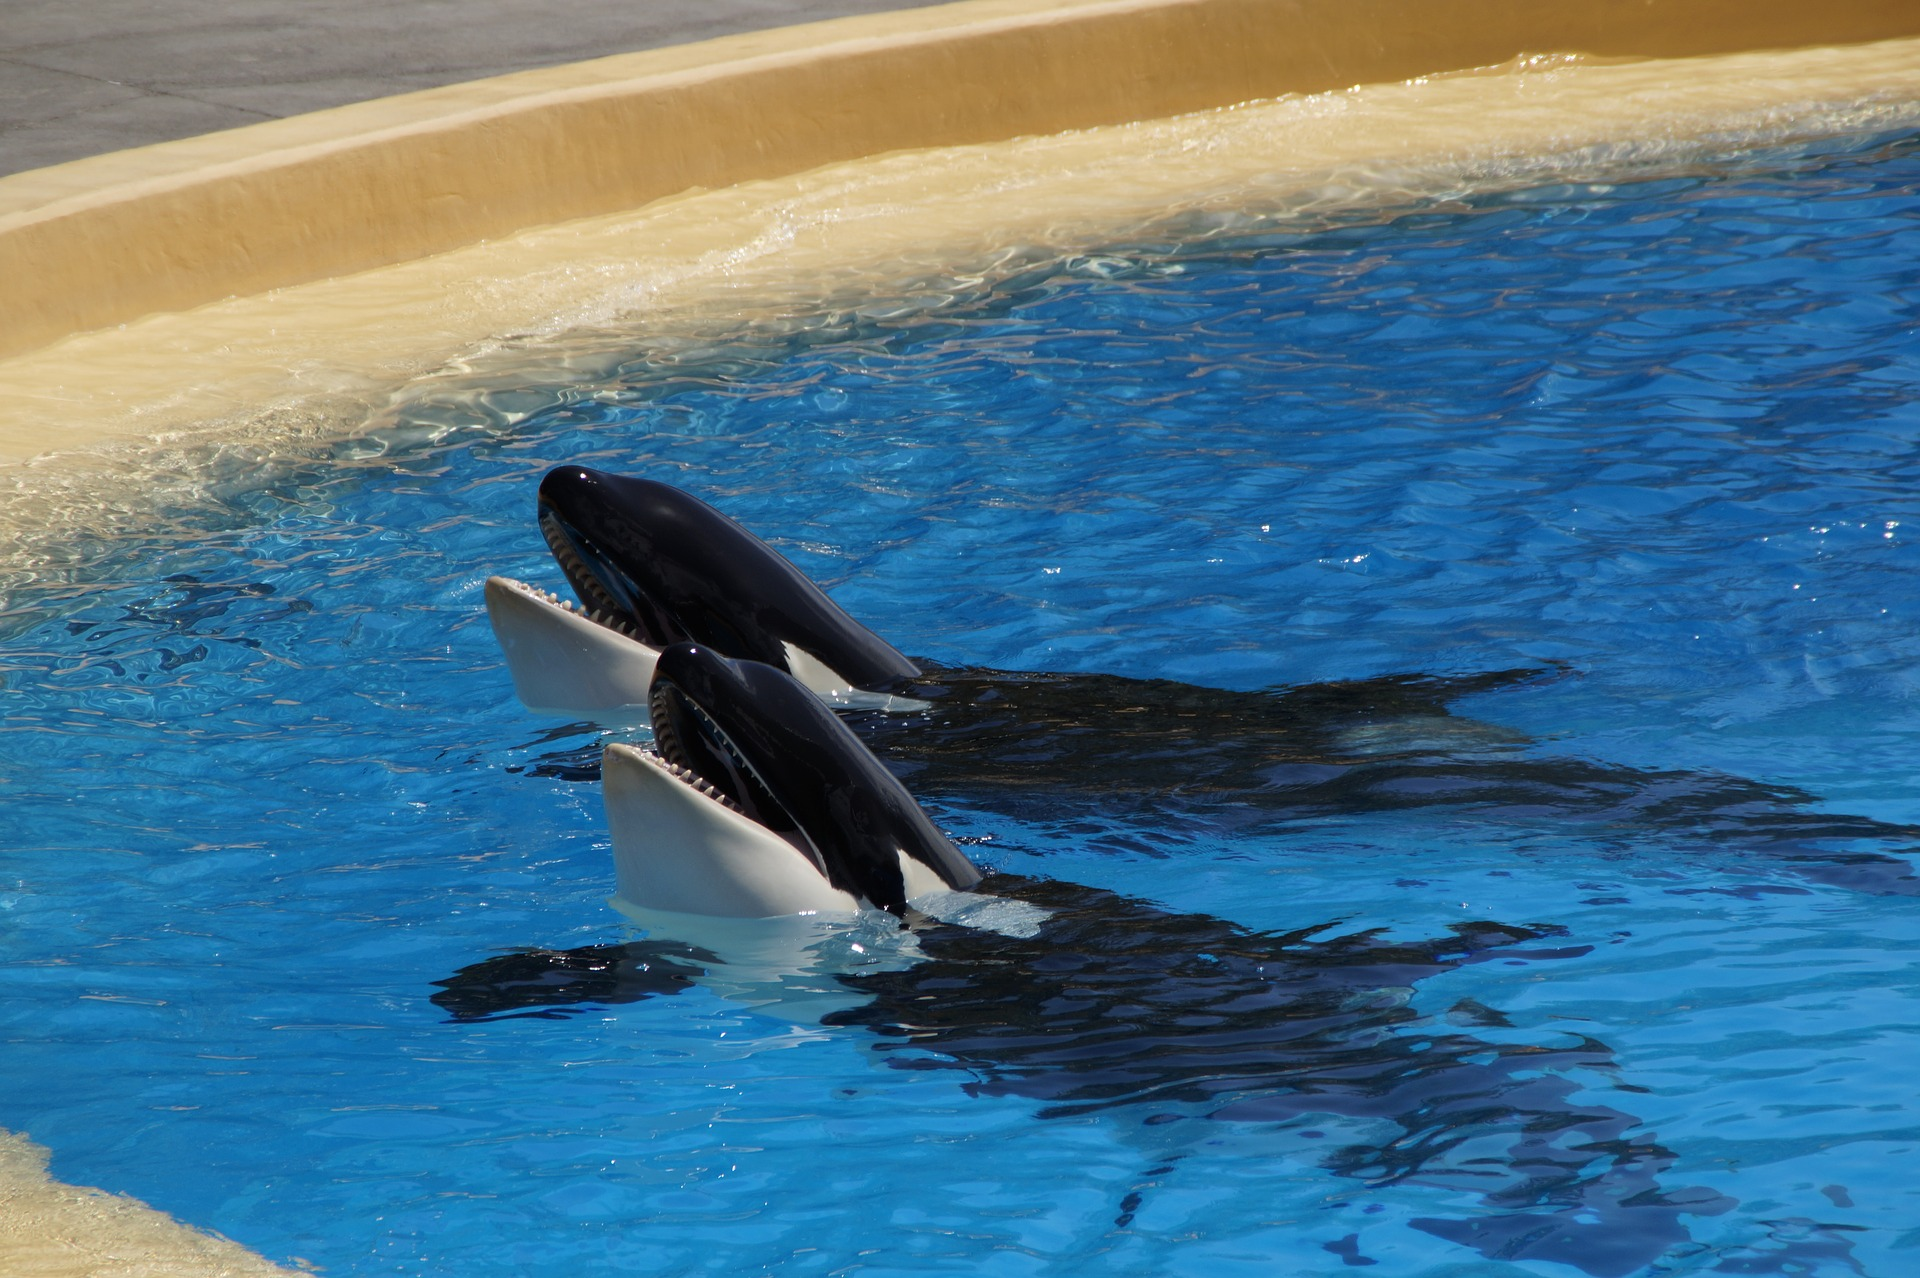 Orca whales in tank